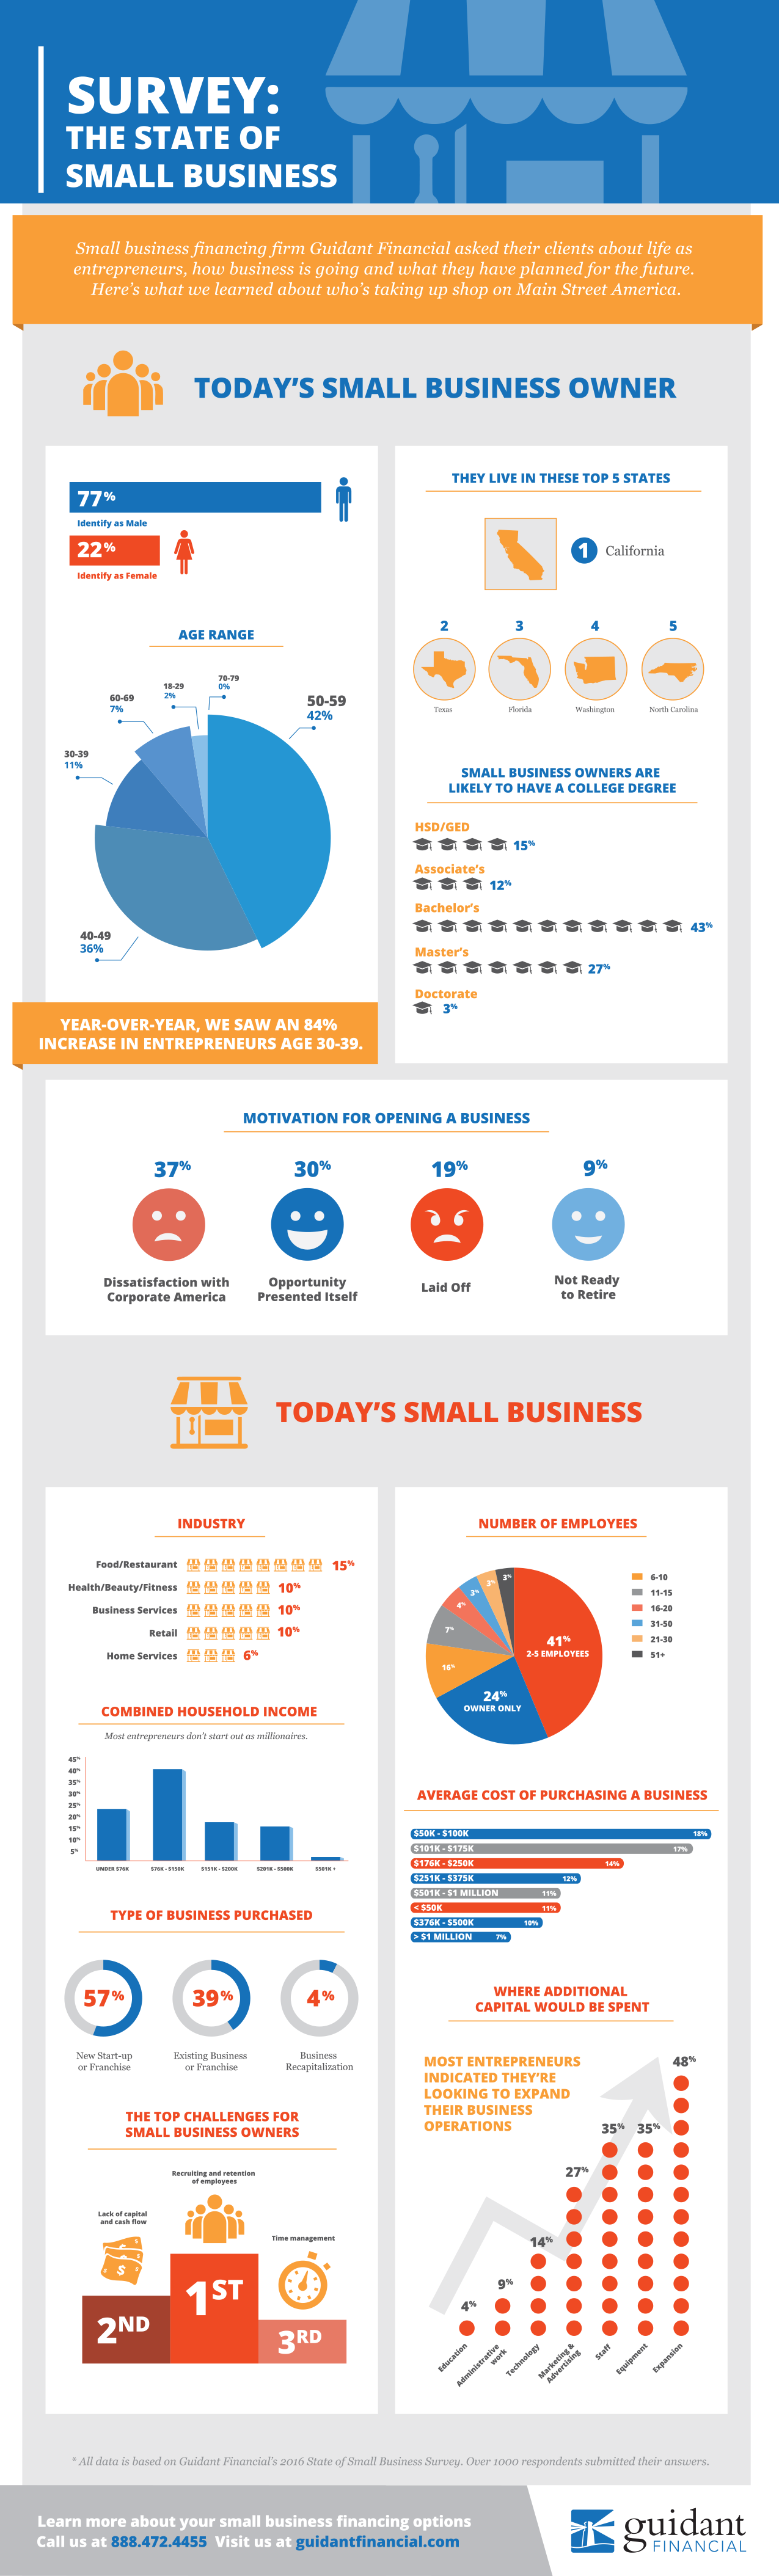 Guidant-Infographic-Survey-That-State-of-Small-Business-in-2016-4.png